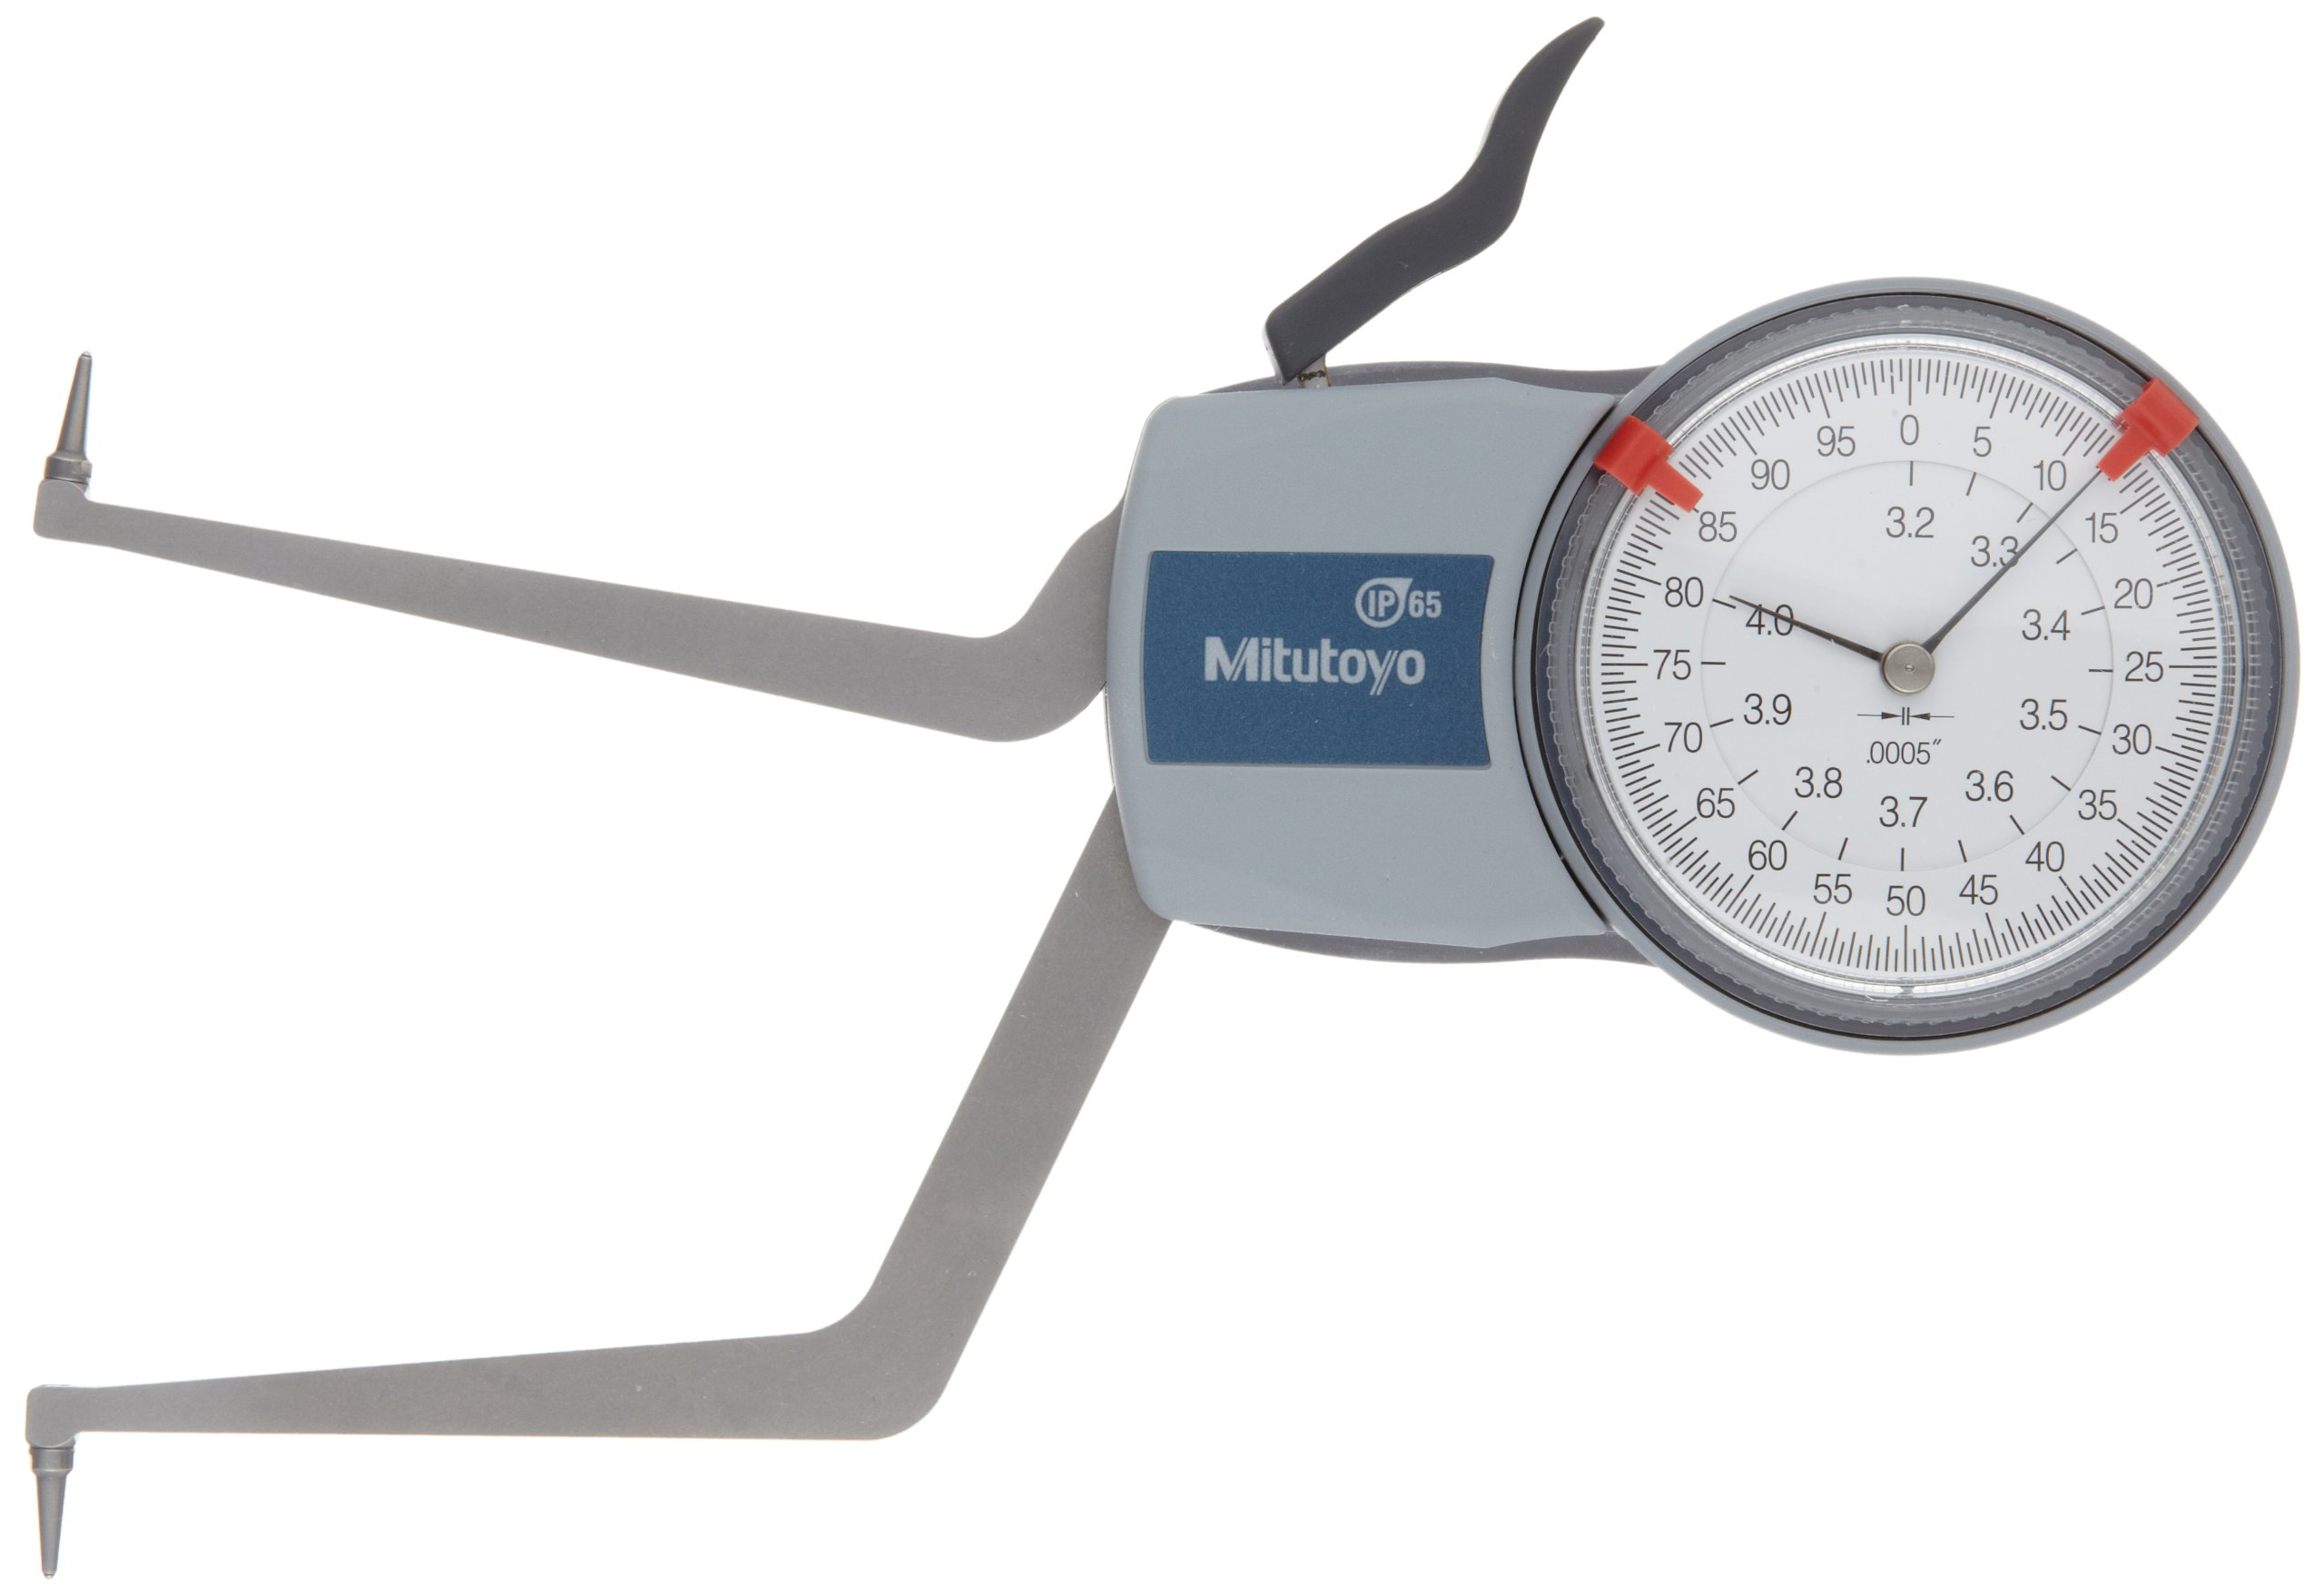 Mitutoyo 209-351 Caliper Gauge, Pointed Jaw, White Face, 0.20-0.60'' Range, +/-0.0008'' Accuracy, 0.0002'' Resolution, Meets IP65 Specifications